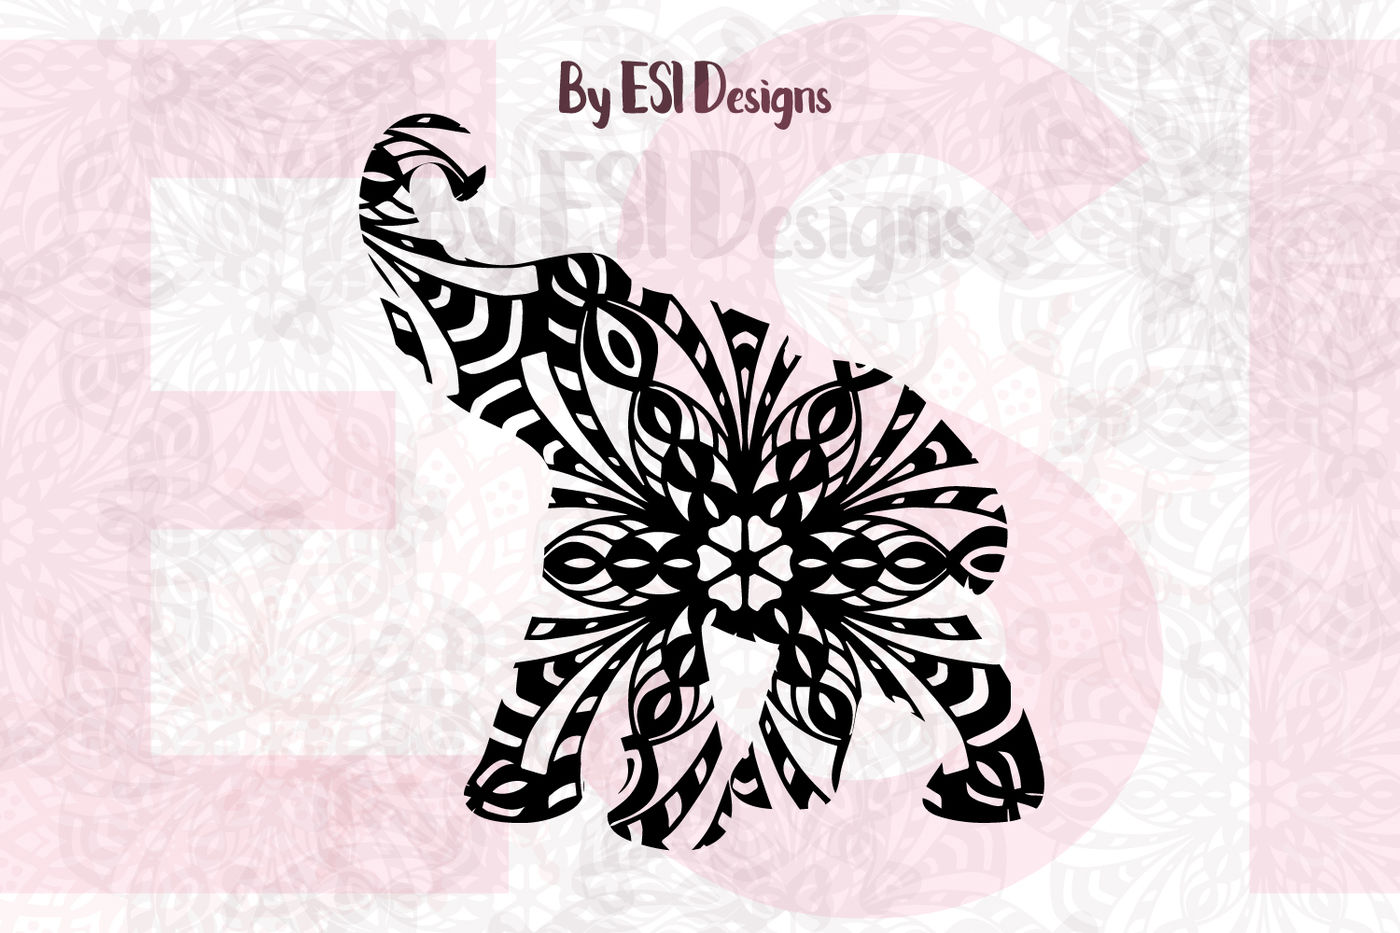 Mandala Elephant Design 1 Svg Dxf Eps Png By Esi Designs Thehungryjpeg Com Almost files can be used for commercial. mandala elephant design 1 svg dxf